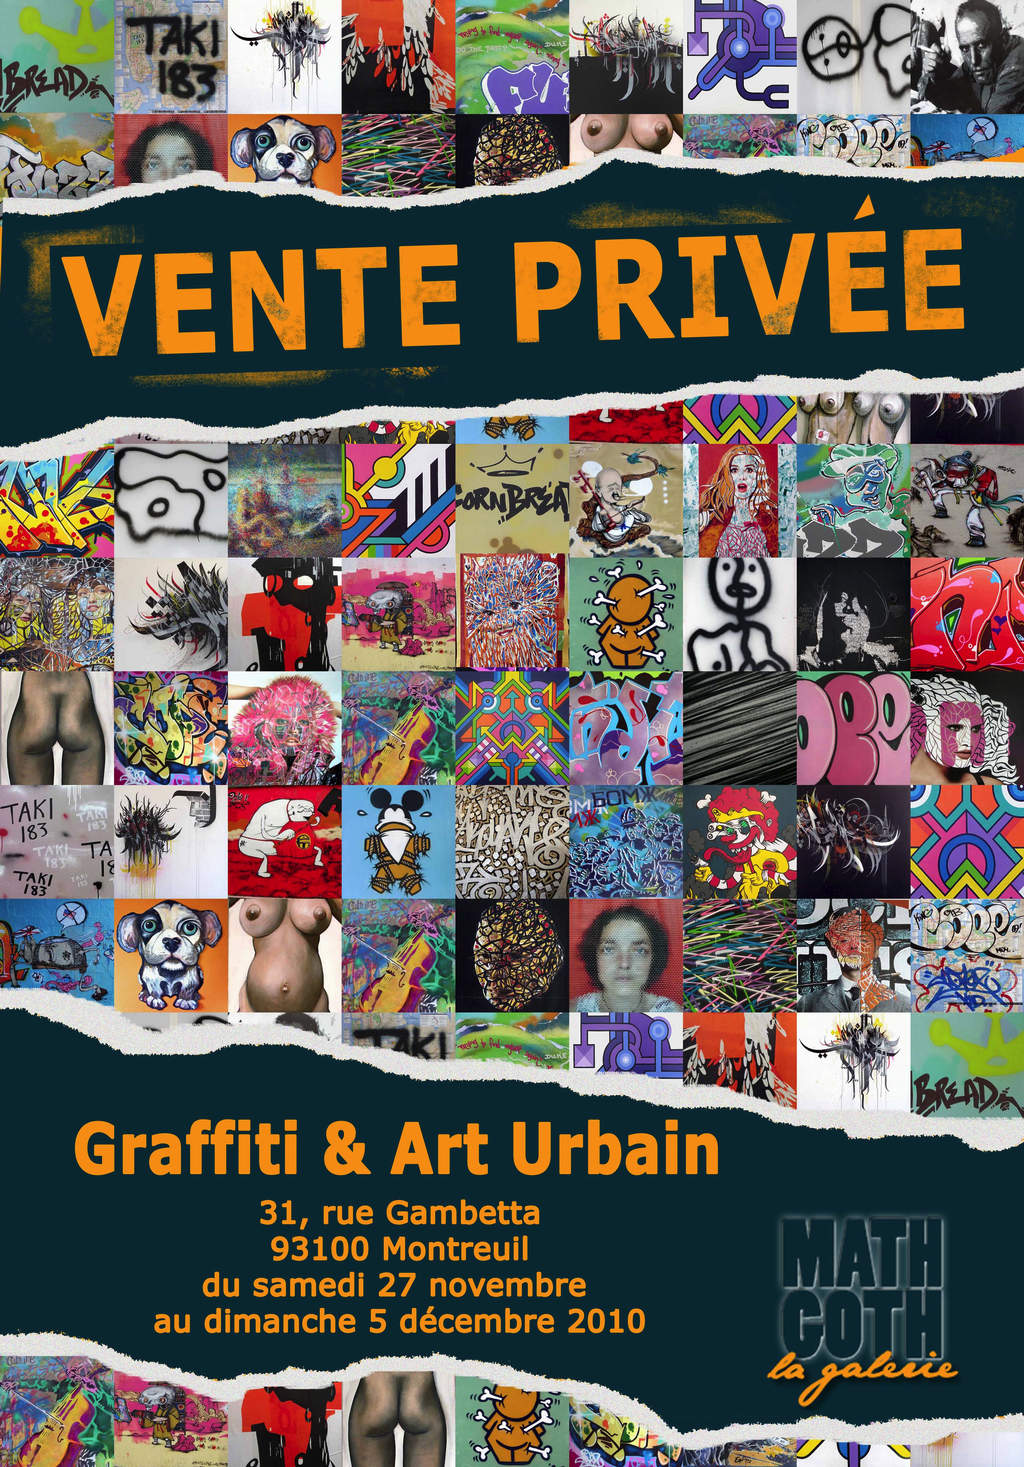 art crimes graffiti news and events france montreuil nov 27 dec 5 2010 vente privee. Black Bedroom Furniture Sets. Home Design Ideas